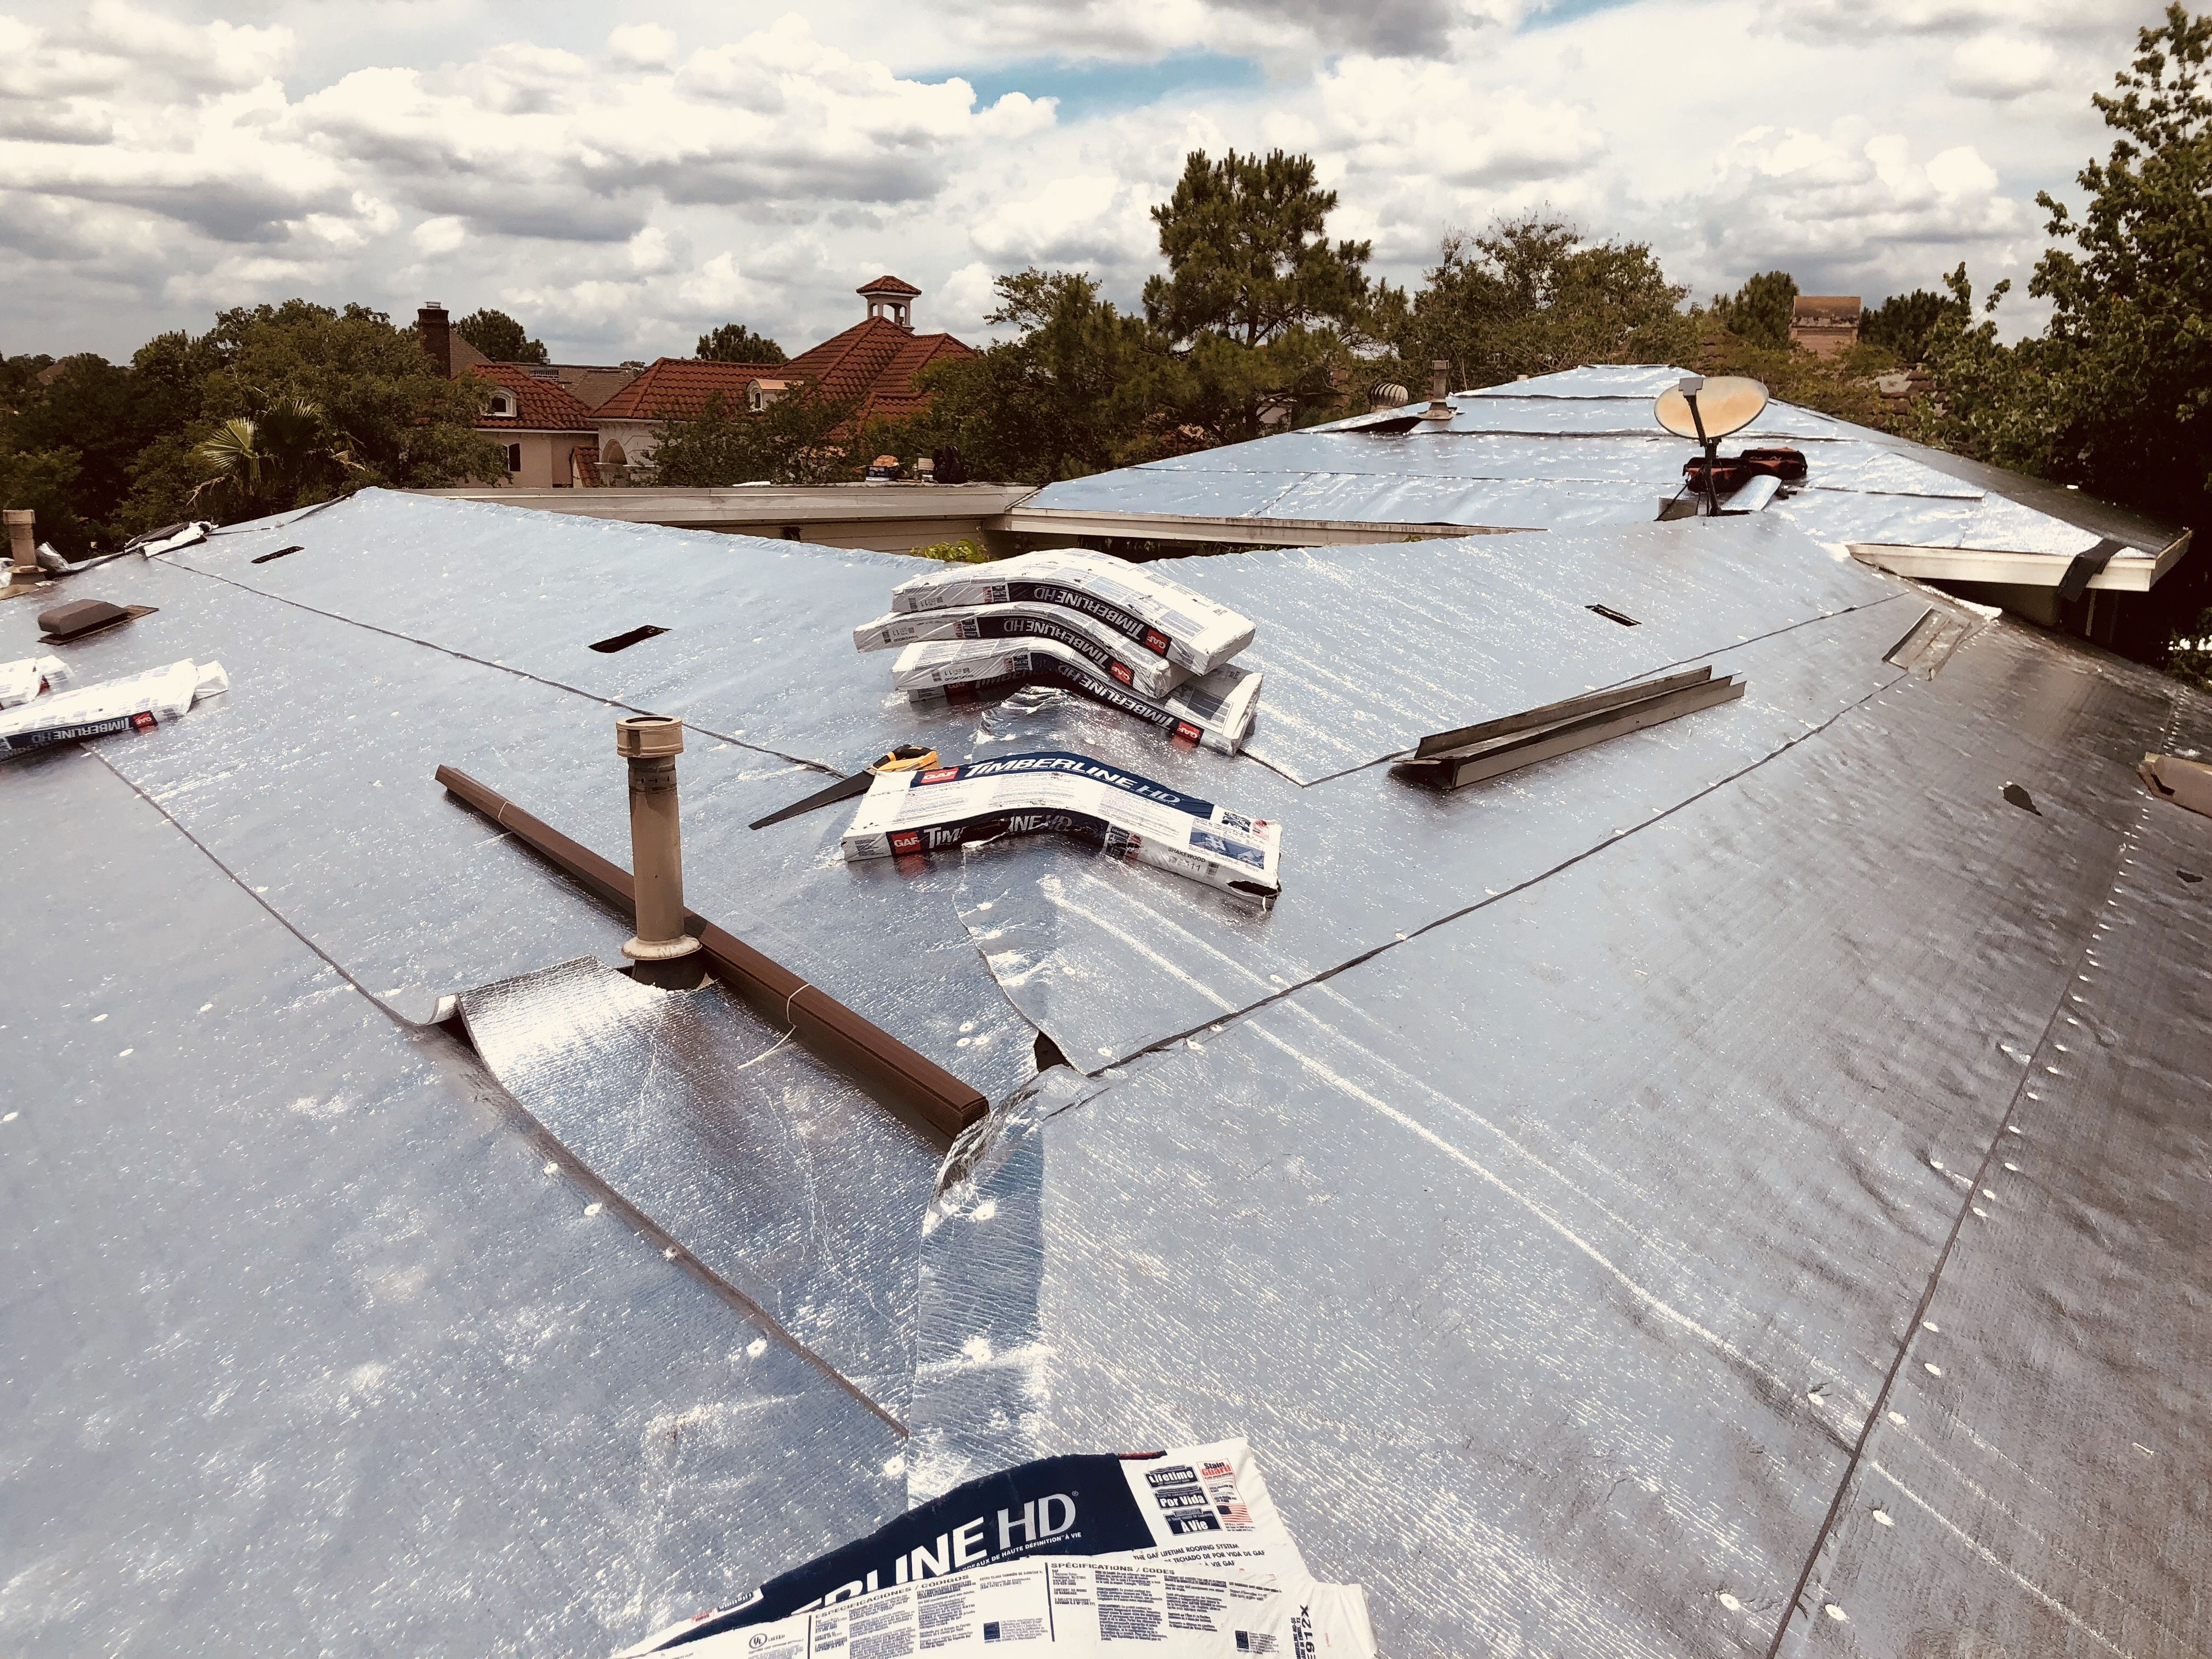 Roof Replacement In The Woodlands Tx With Lowe Therma Sheet Replacement Newroof Woodlands Texas Gaf Lowe Thermashee Modern Roof Design Roof Design Roof